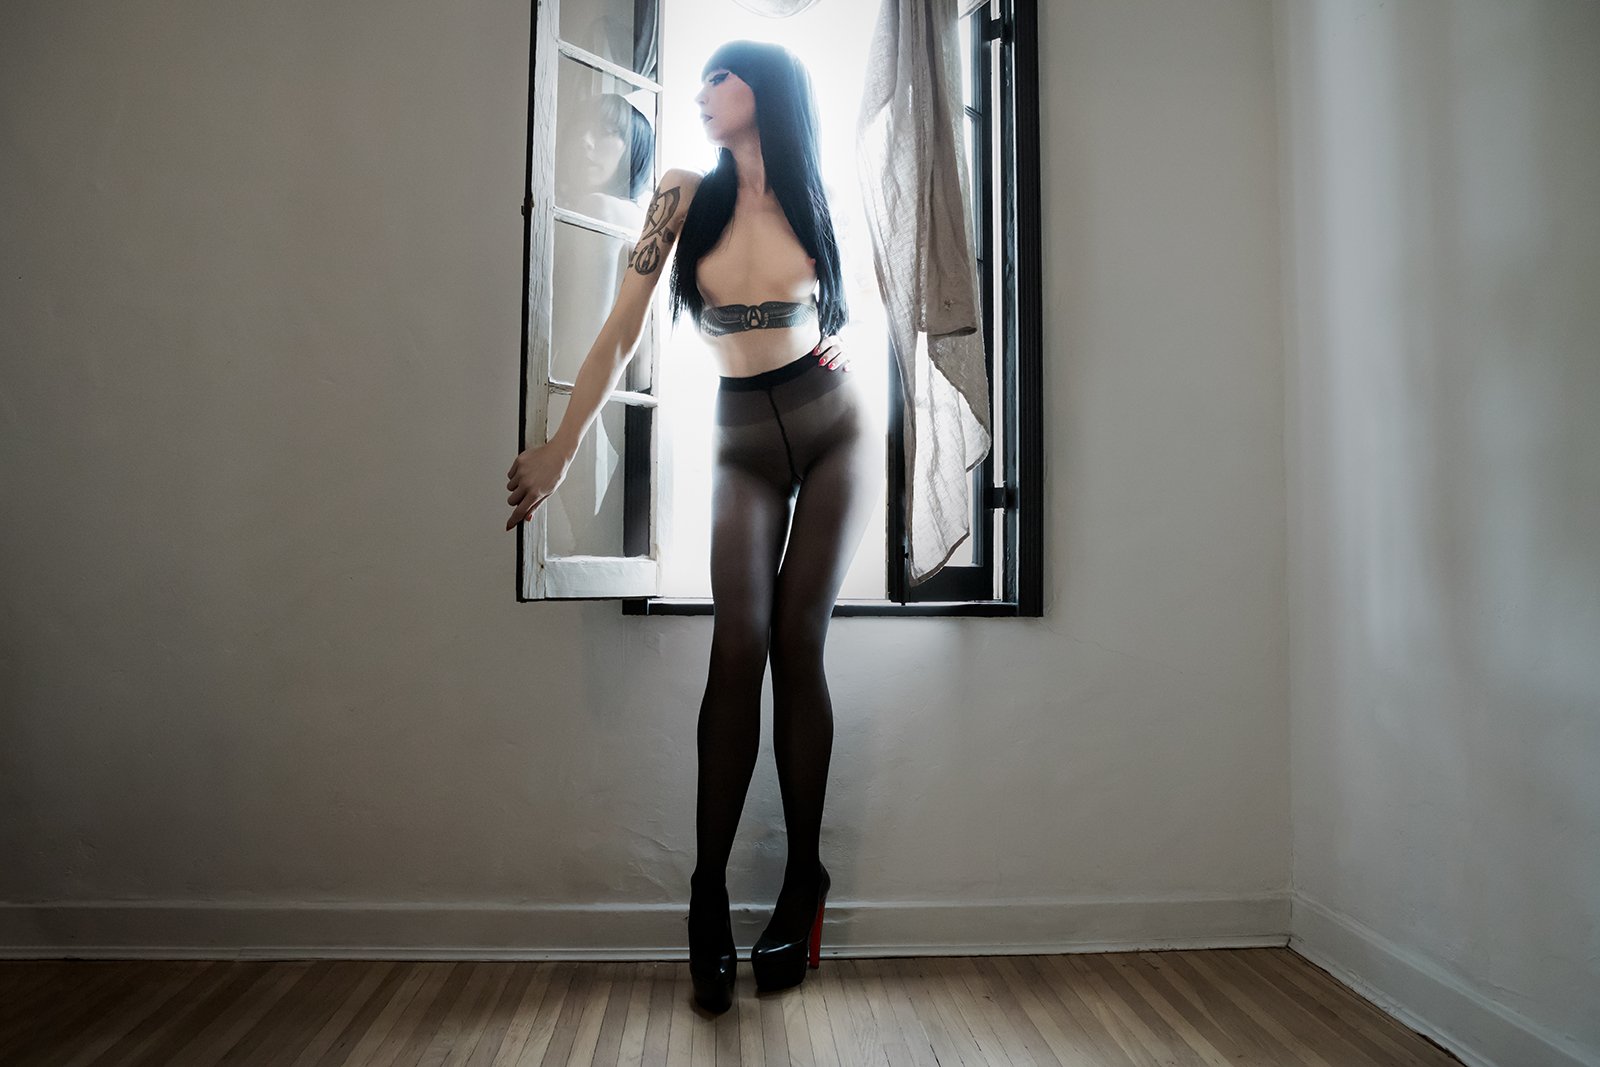 Ramona_Ryder_NYC_New_York_City_Brooklyn_Escort_Model_04.jpg